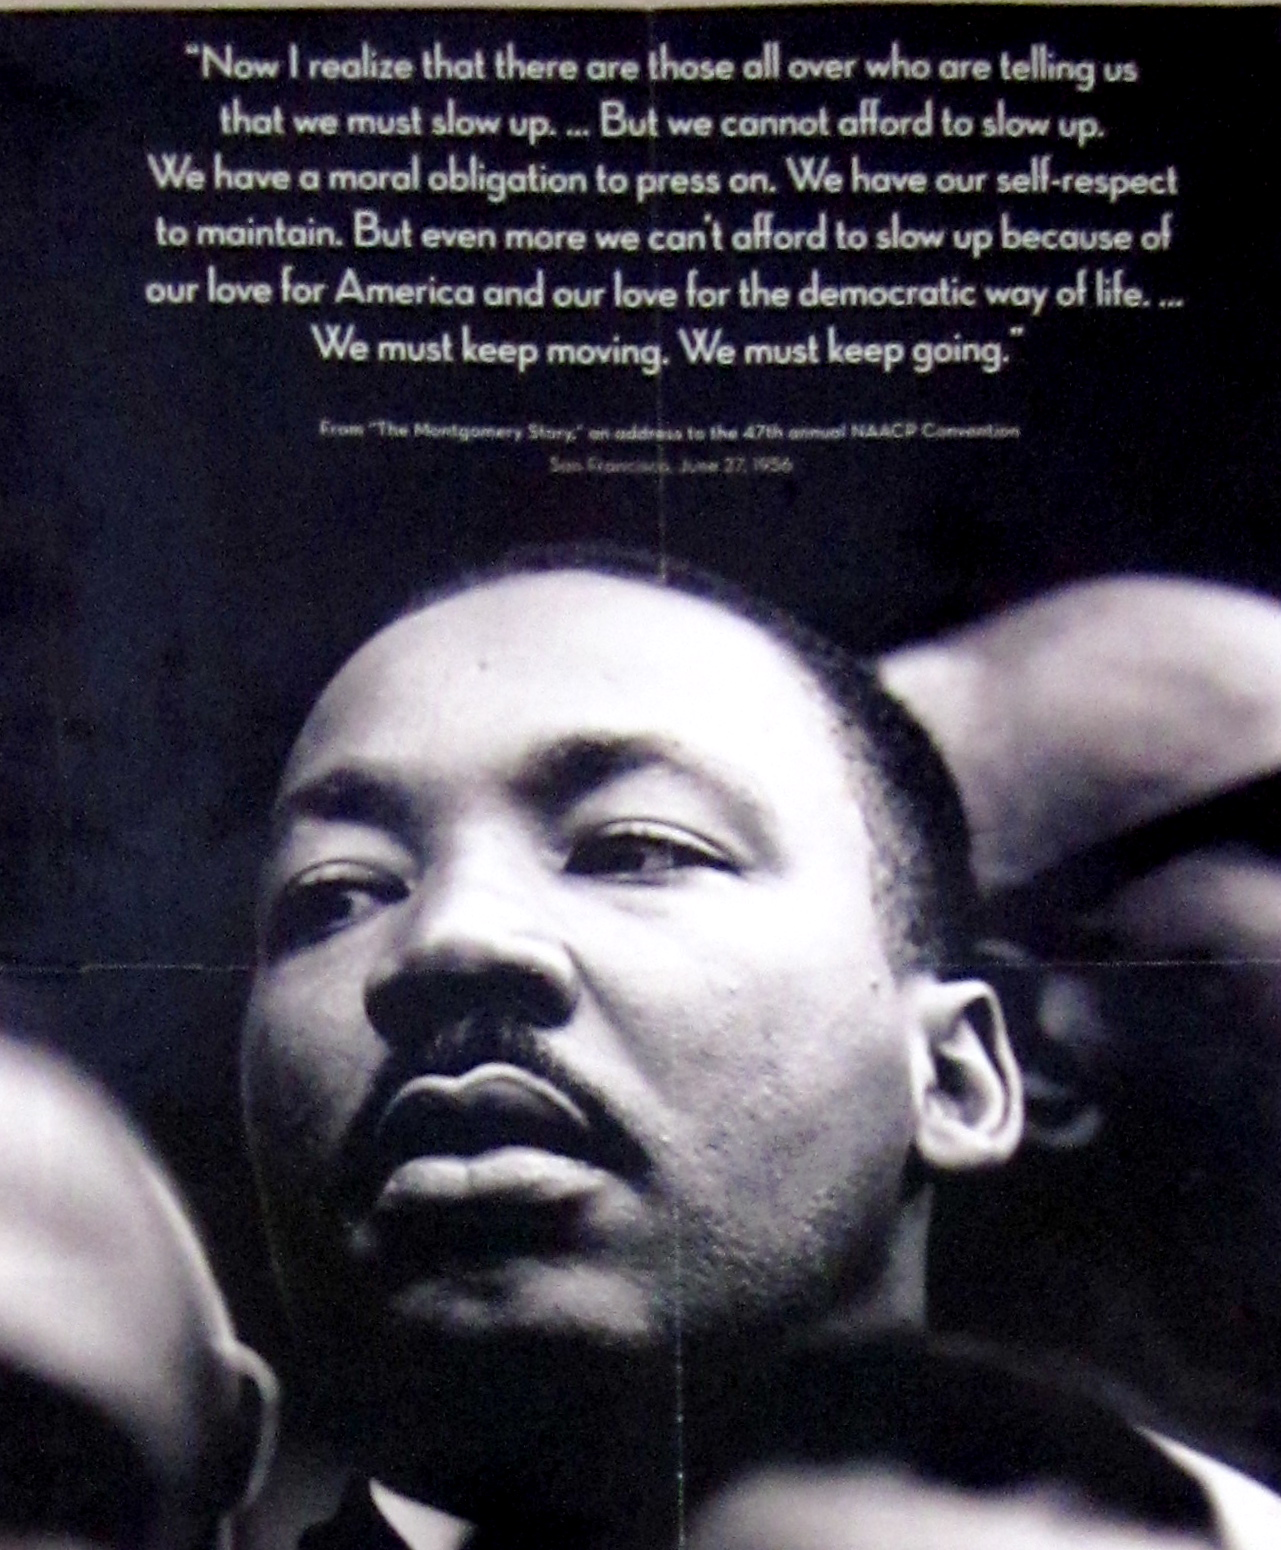 Dr King Quotes: School Counselor Blog: Taking Steps To Make Dr. Martin